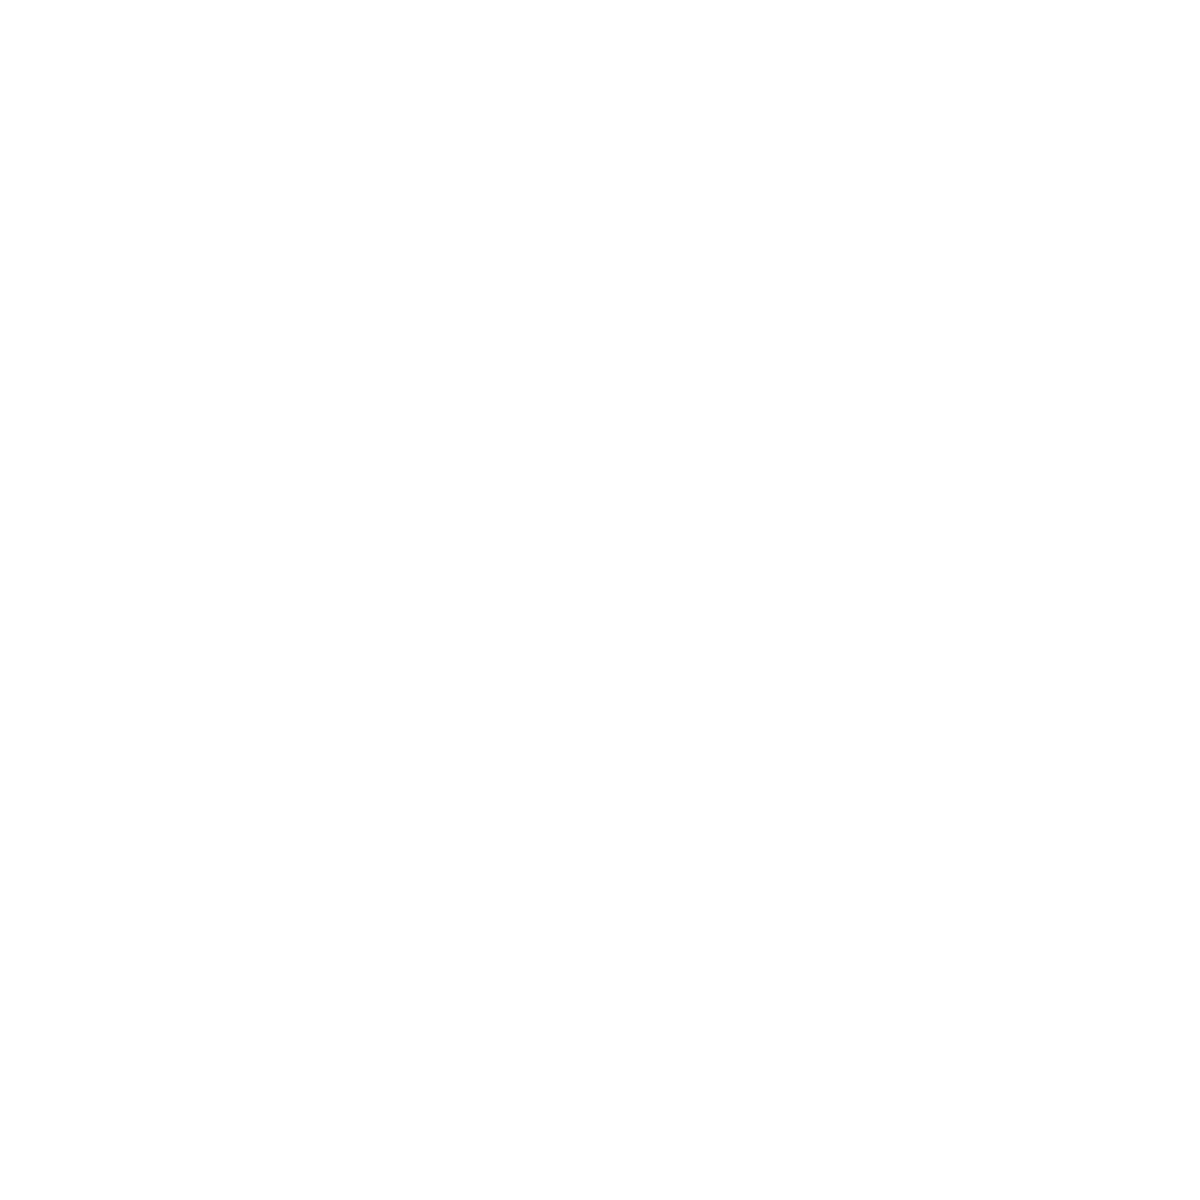 Probity Merch Roster - Official Red Hot Chili Peppers Merch - Red Hot Chili Peppers Logo